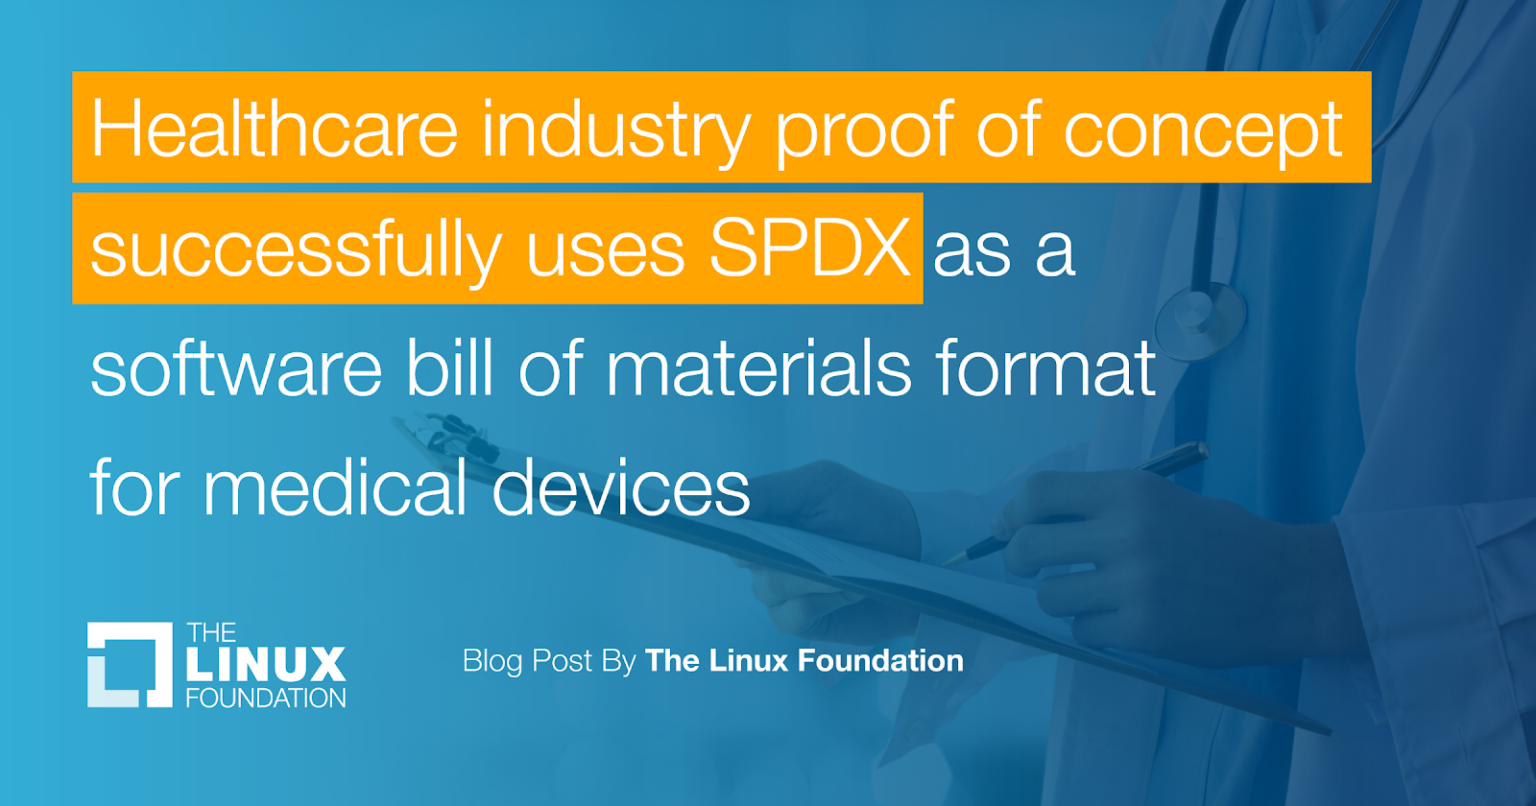 Healthcare industry proof of concept successfully uses SPDX as a software bill of materials format for medical devices